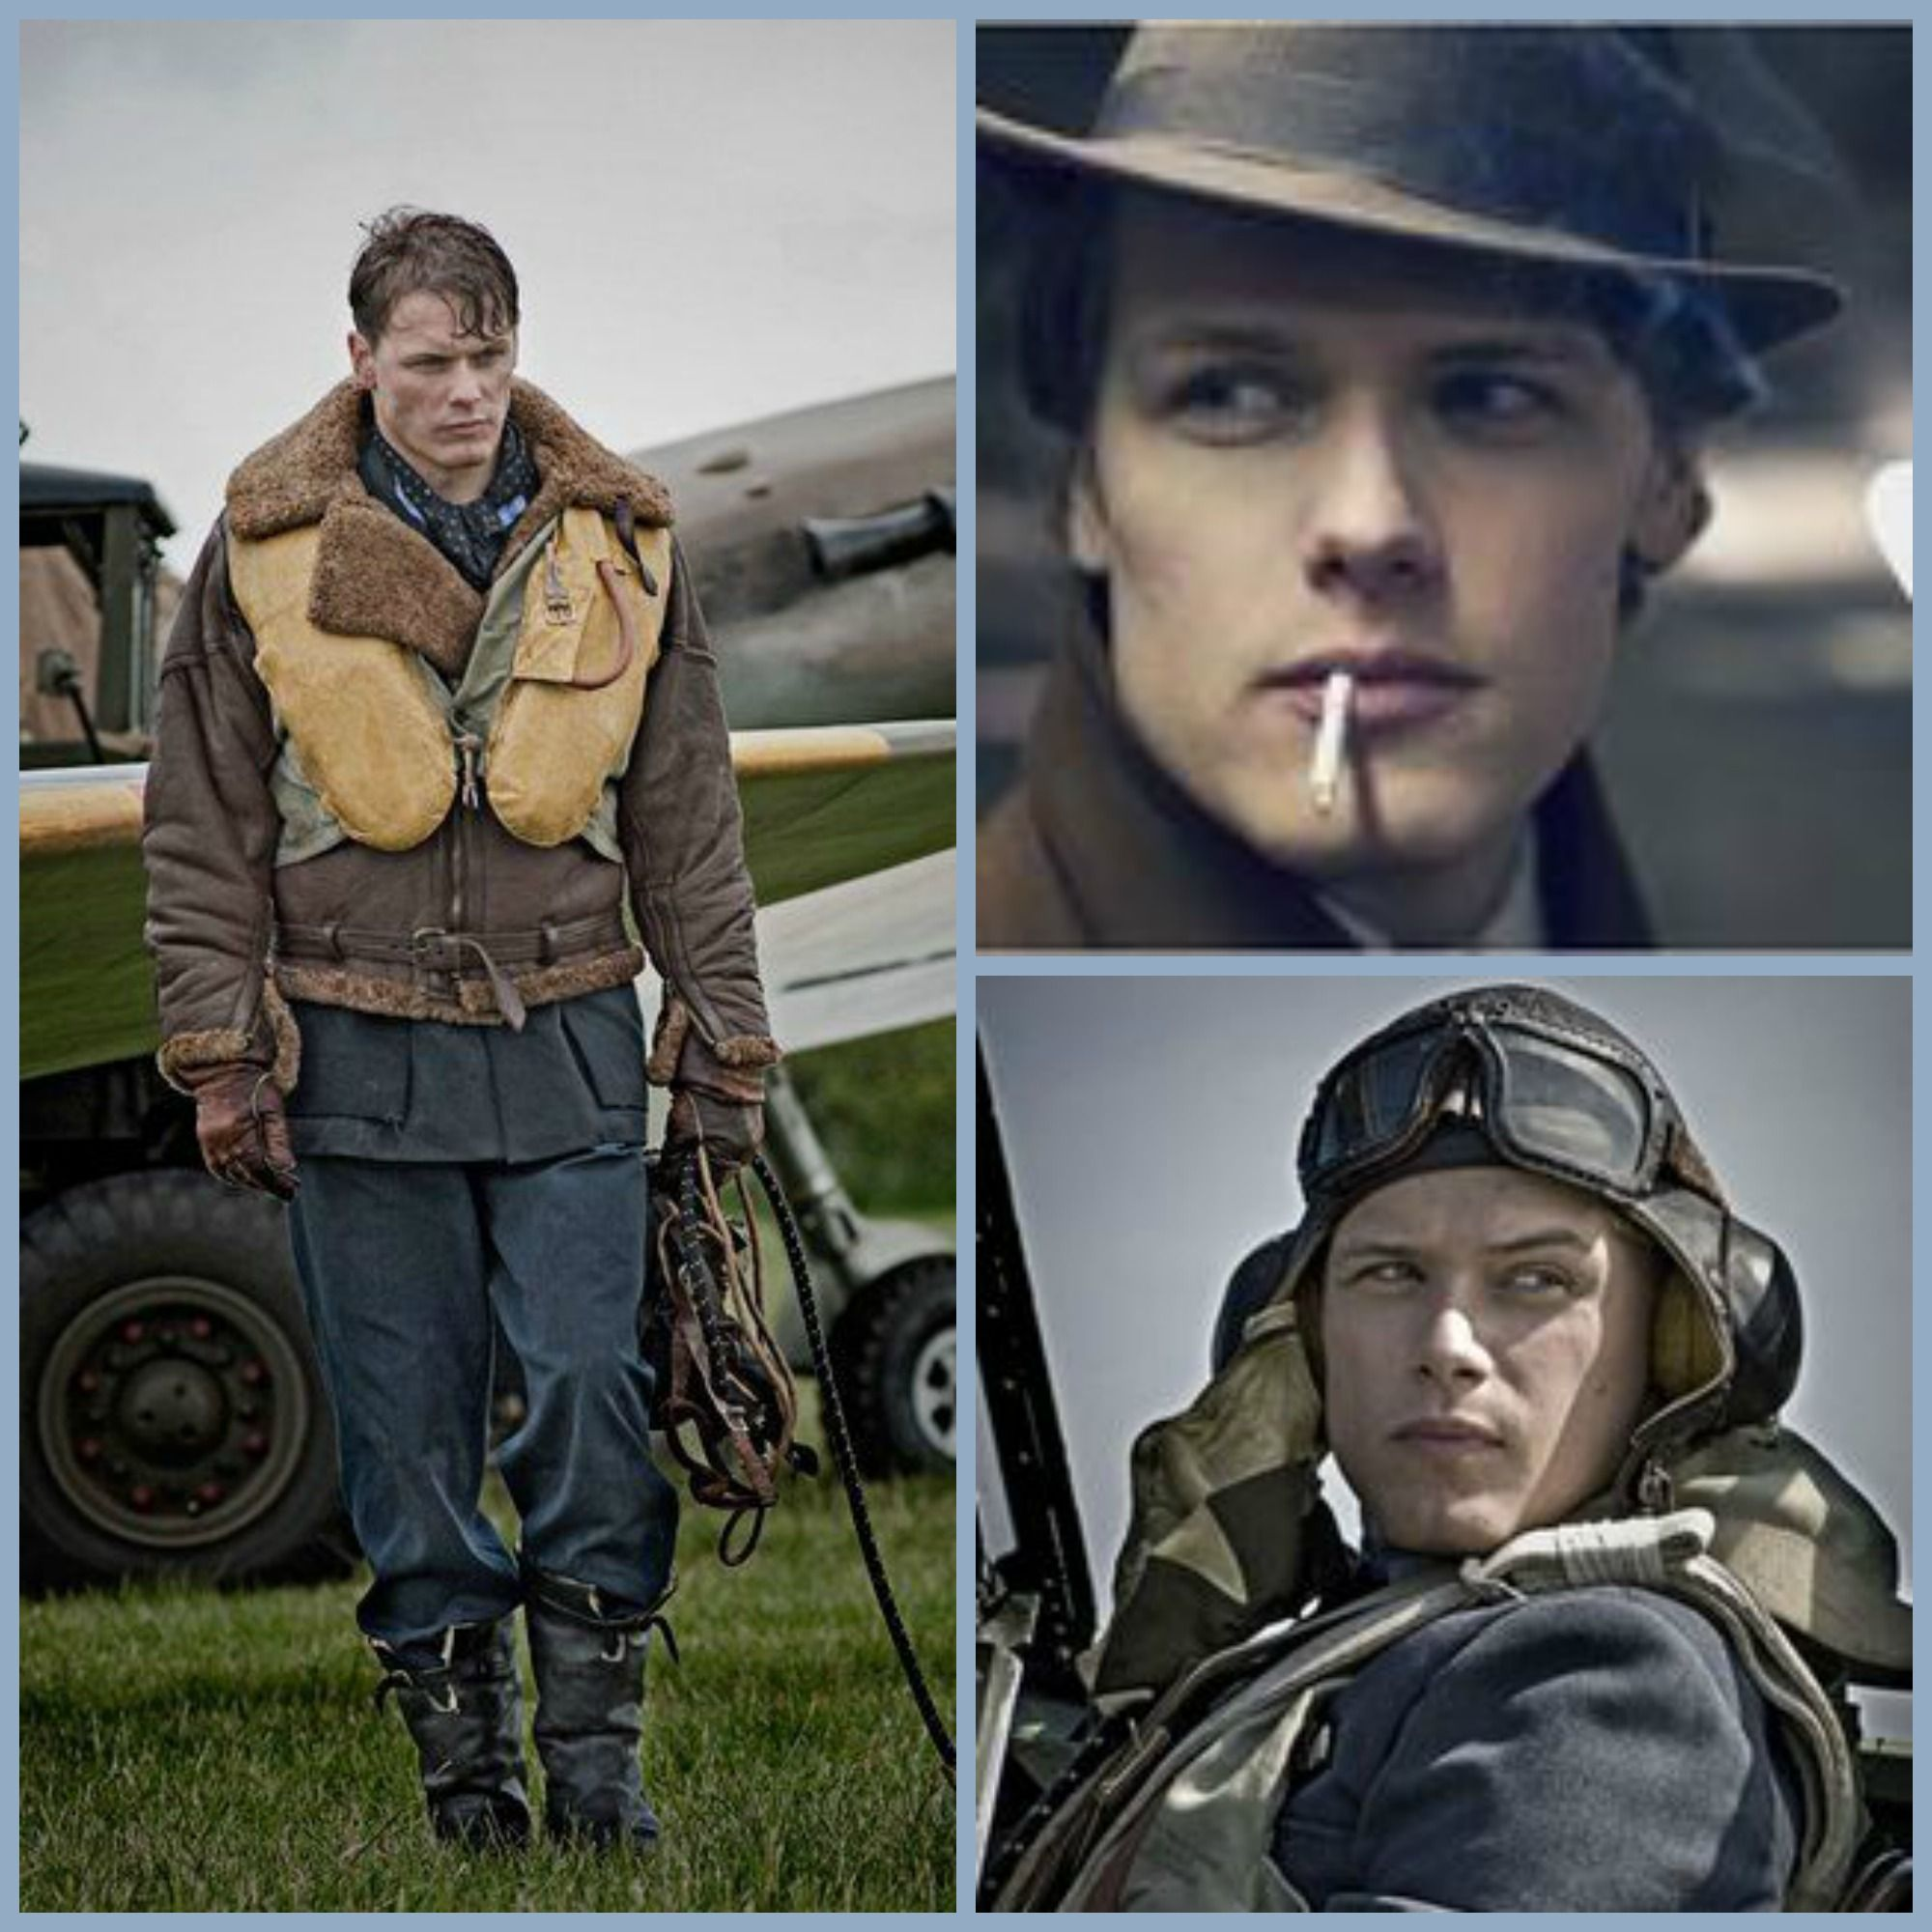 Sam Heughan in First Light role before Outlander   Sam heughan, Sam heughan  outlander, Sam heughan movies